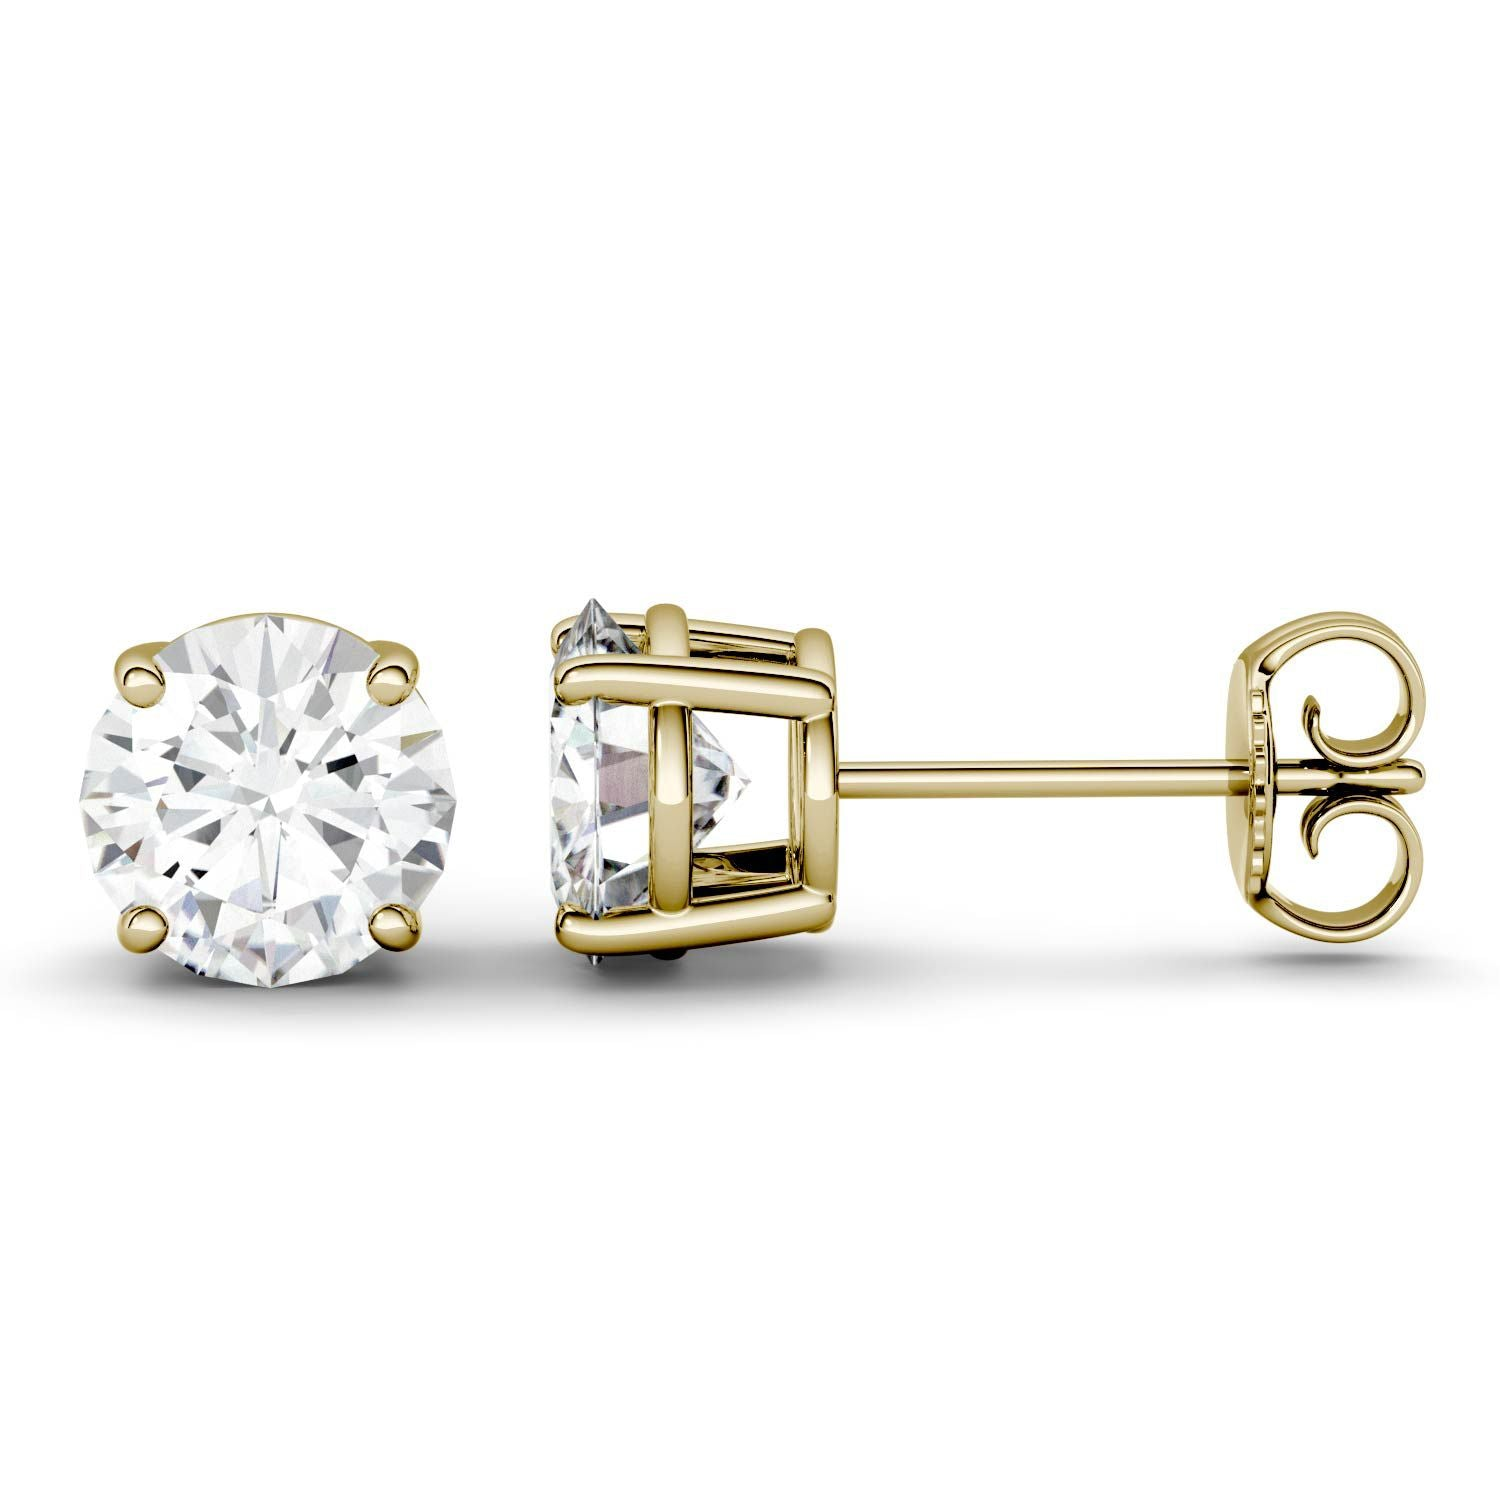 1 Carat TW Charles & Colvard Moissanite Stud Earrings in Yellow Gold-612702 - Jewelry by Johan